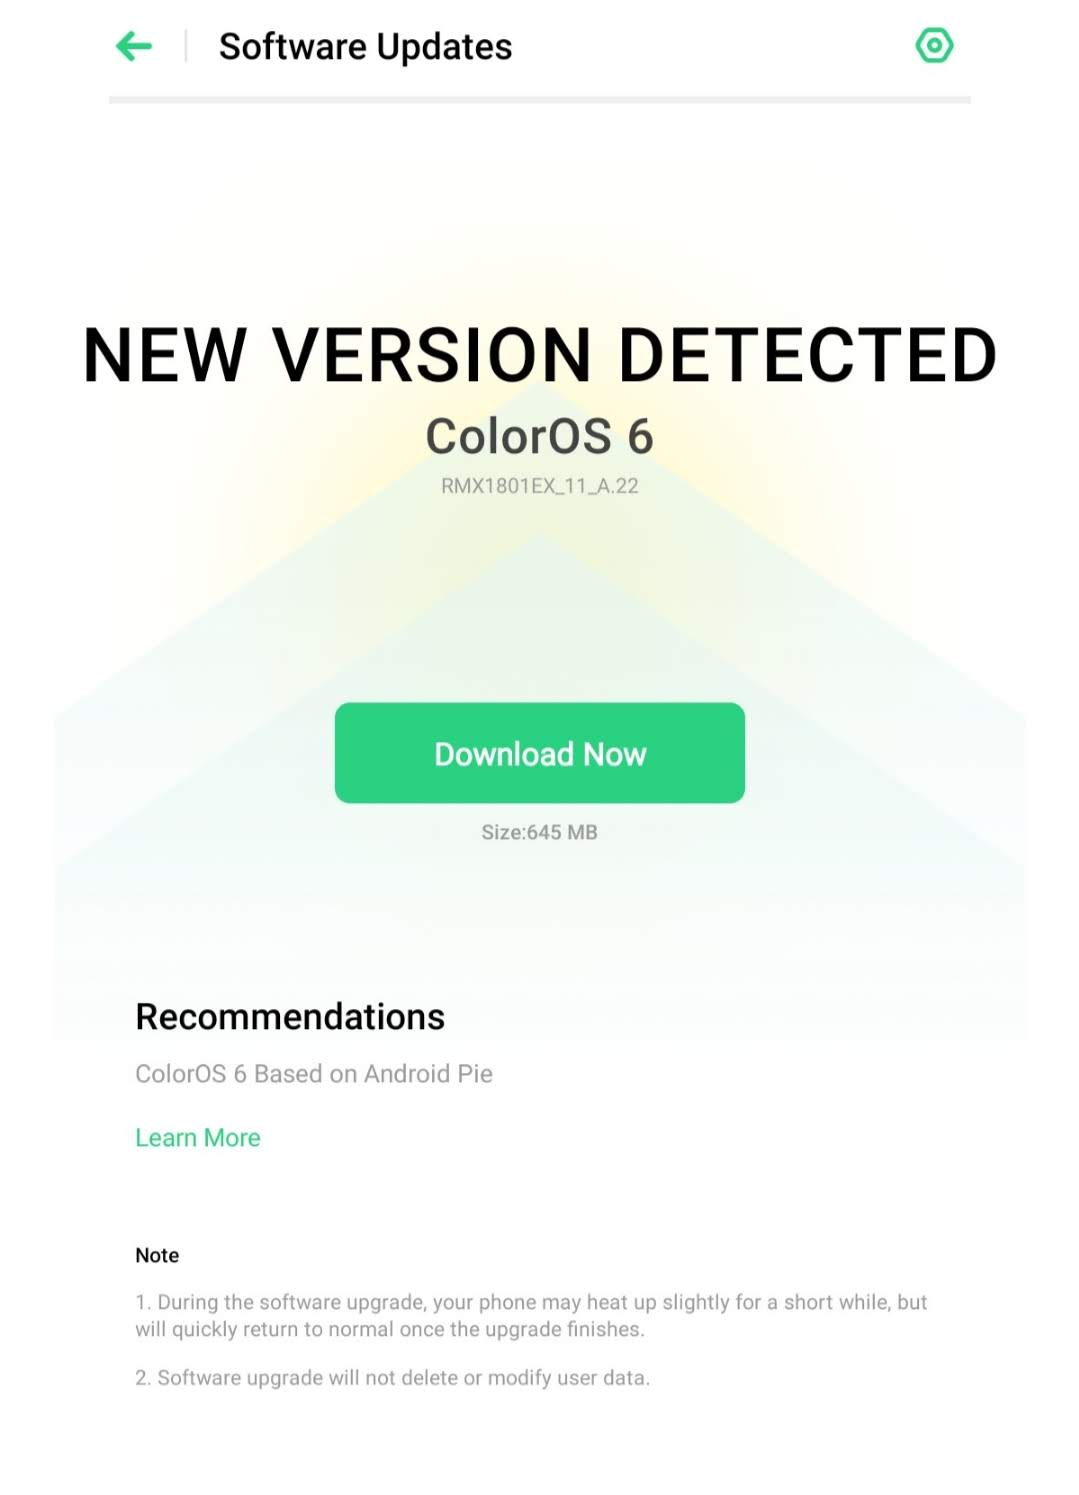 Realme 2 Pro Gets a Major ColorOS 6 Update in August/September?